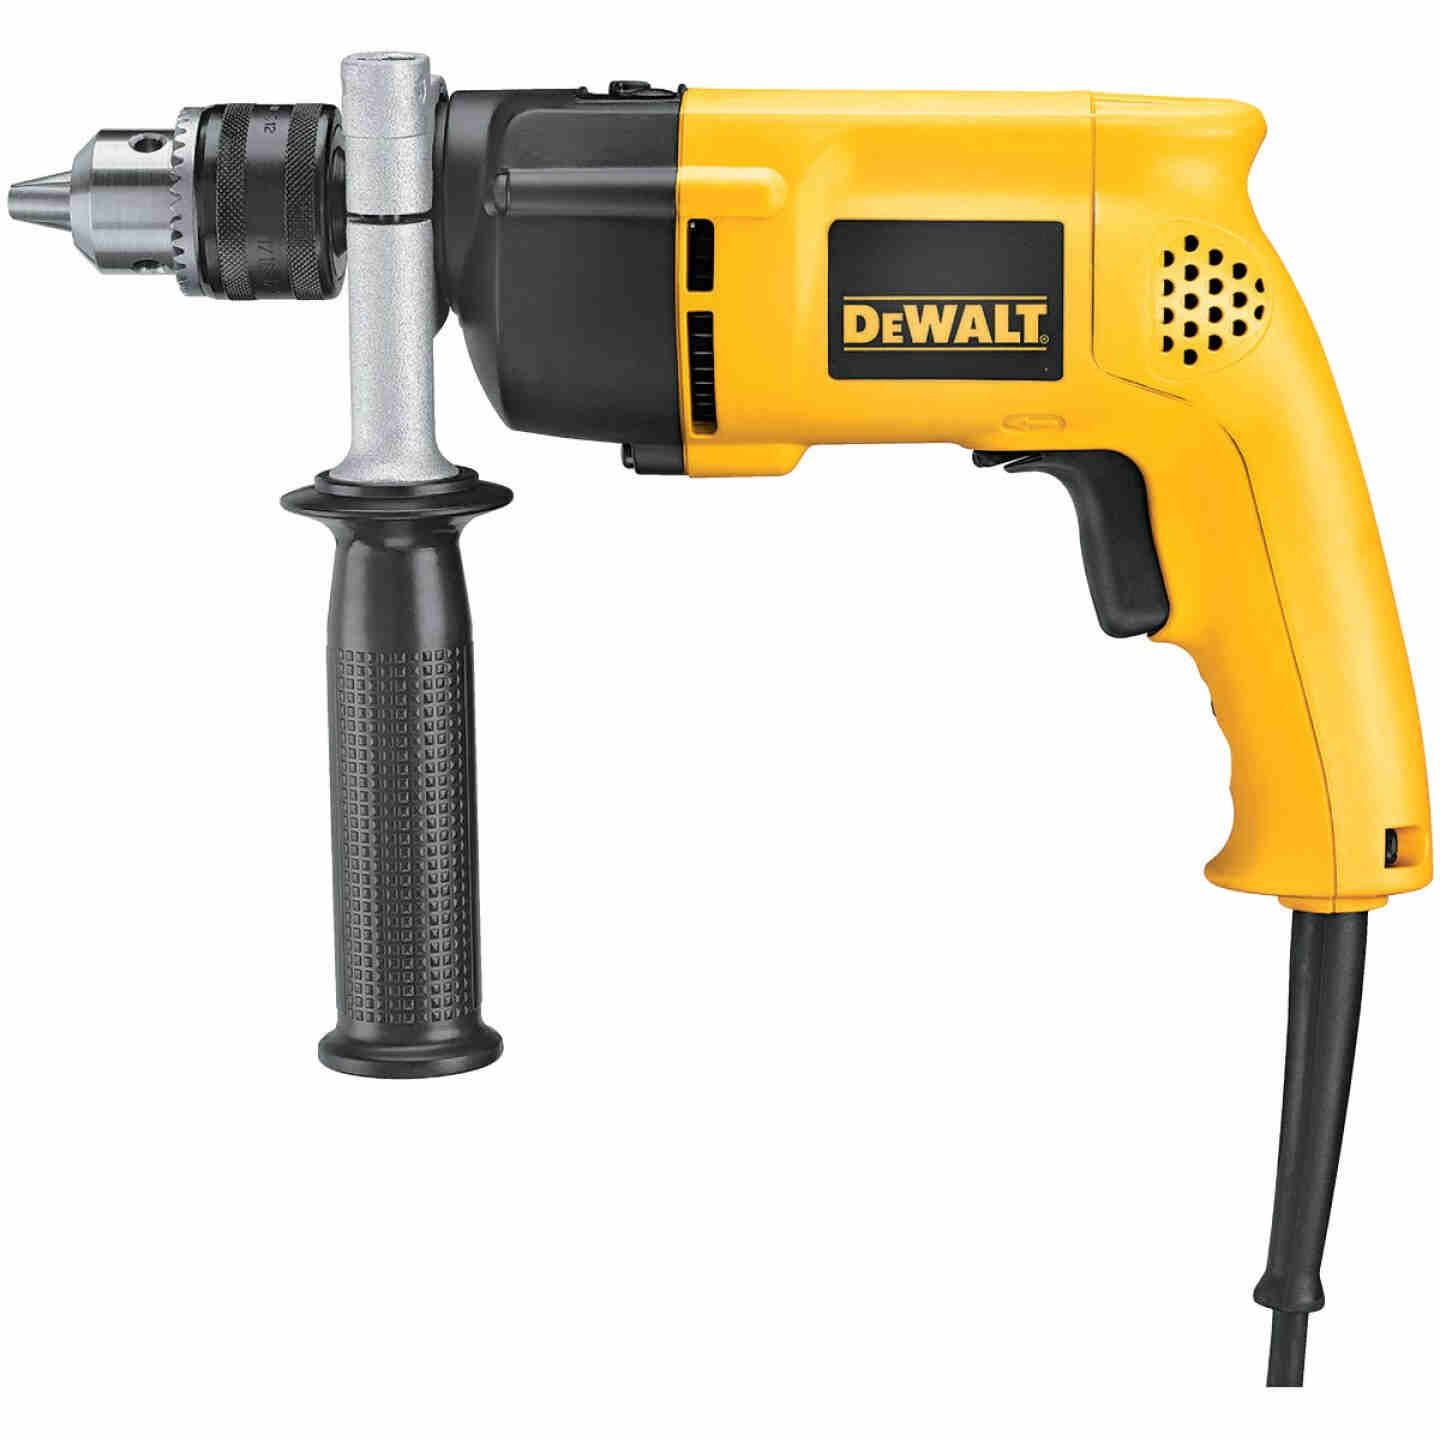 DeWalt 1/2 In. Keyed 8.5-Amp VSR Single-Speed Electric Hammer Drill Image 1